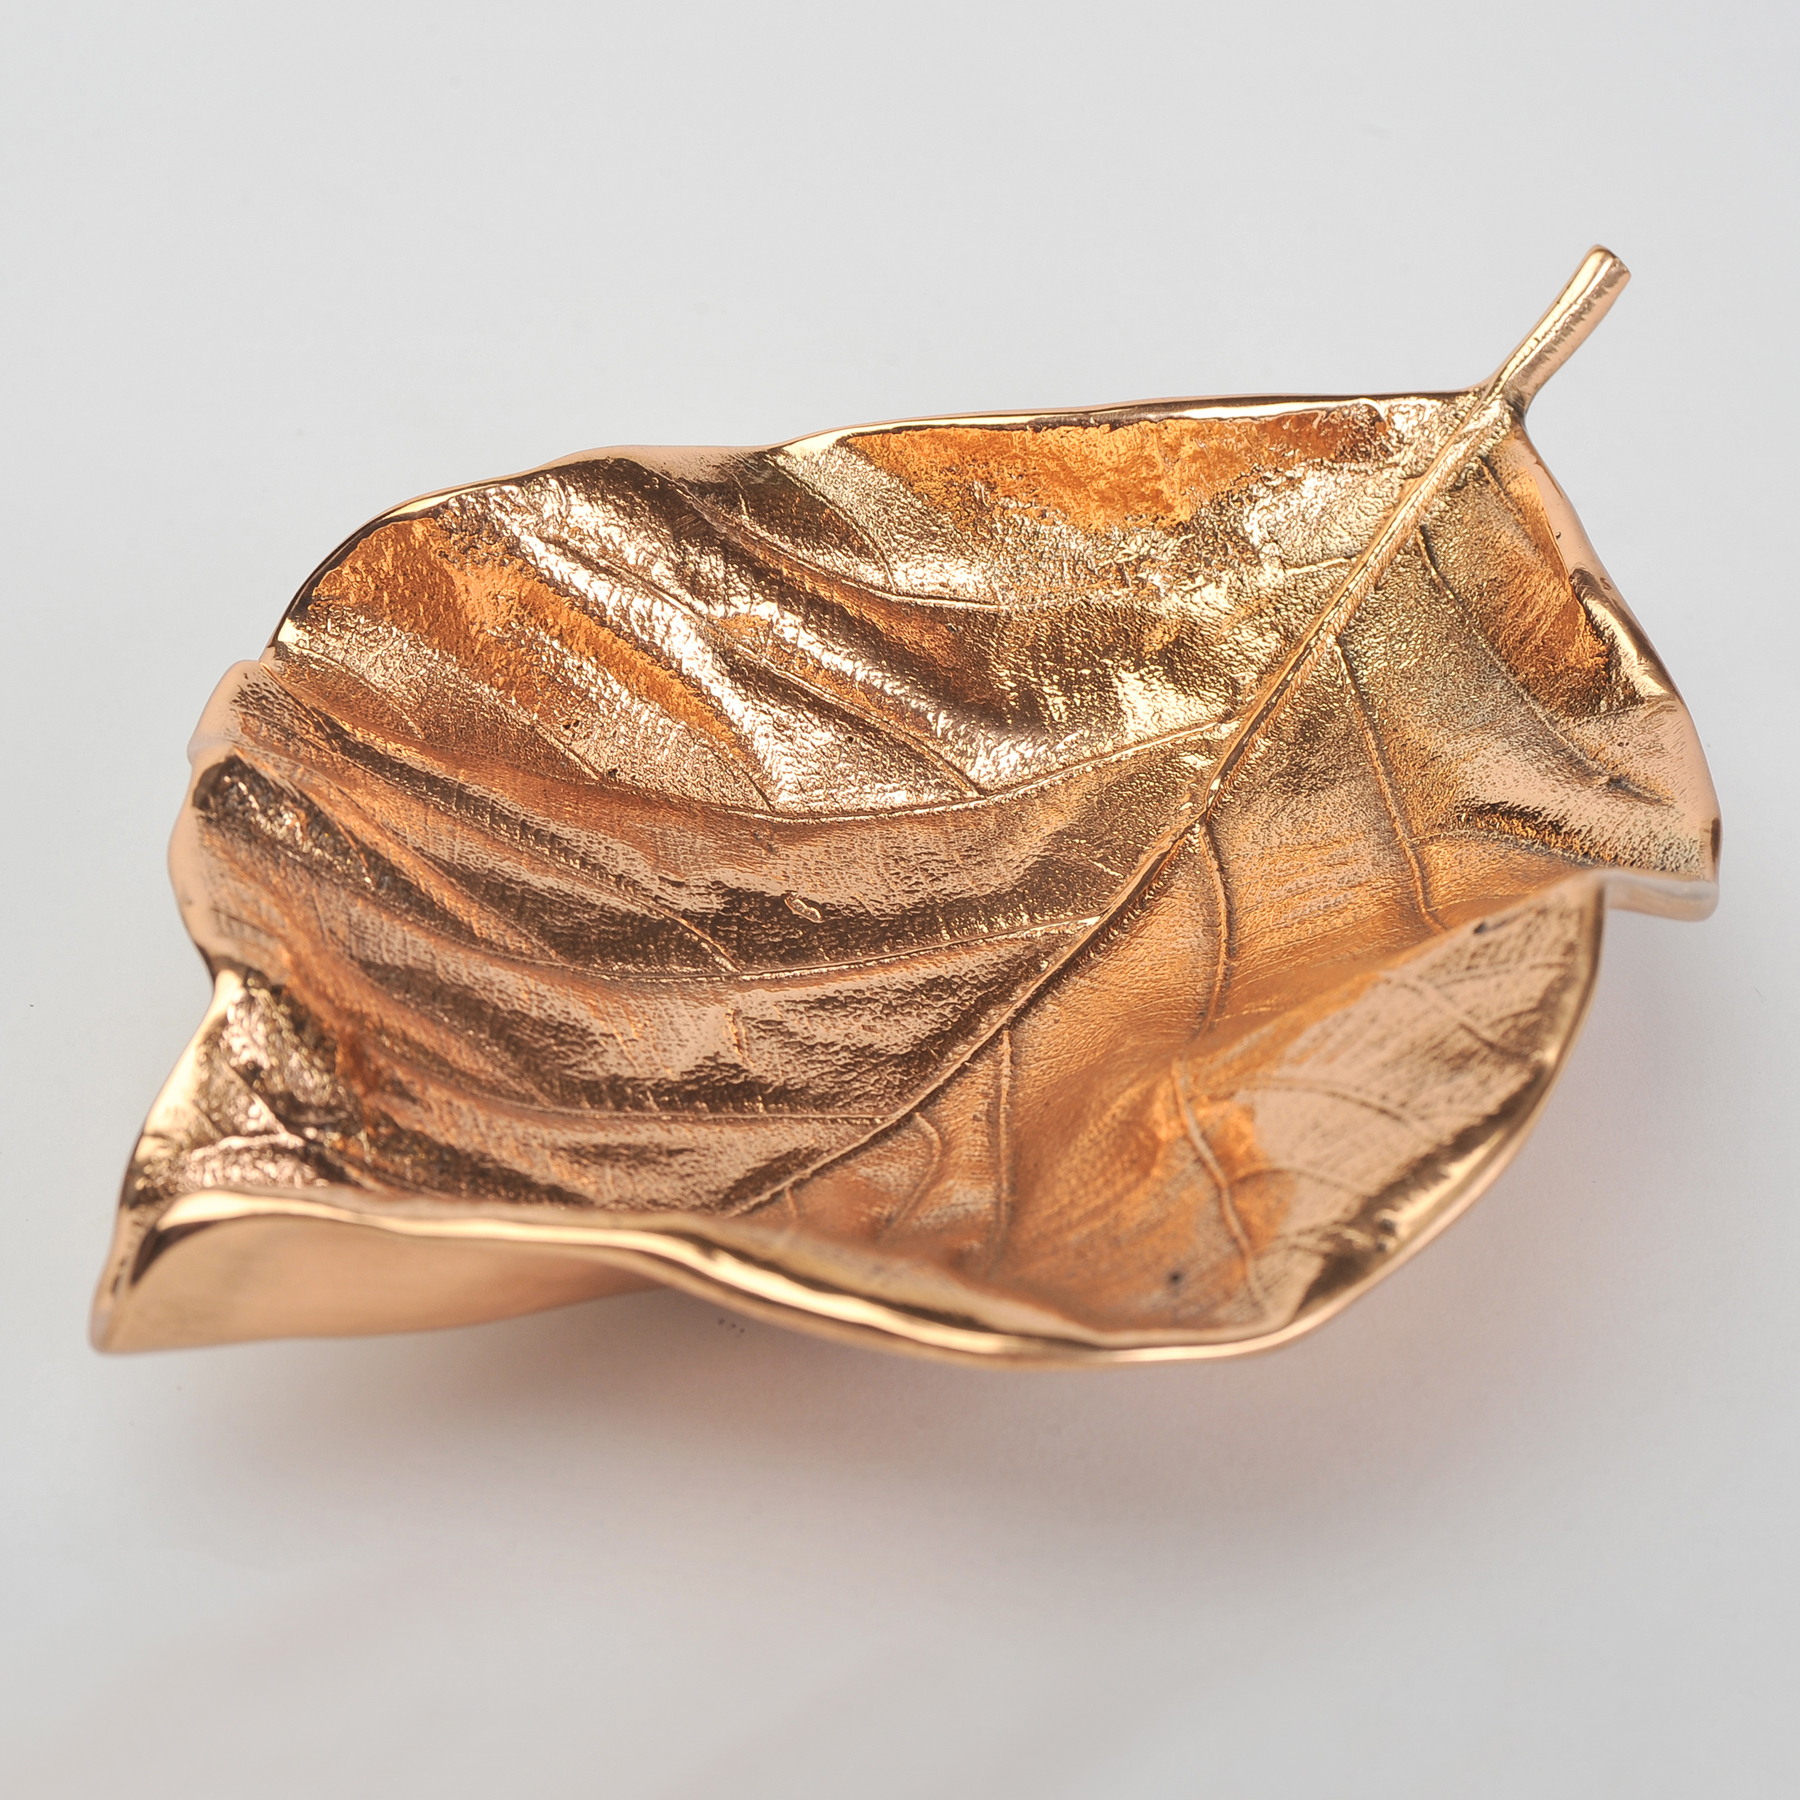 Valerie Wade Cast Bronze Leaf Small 01